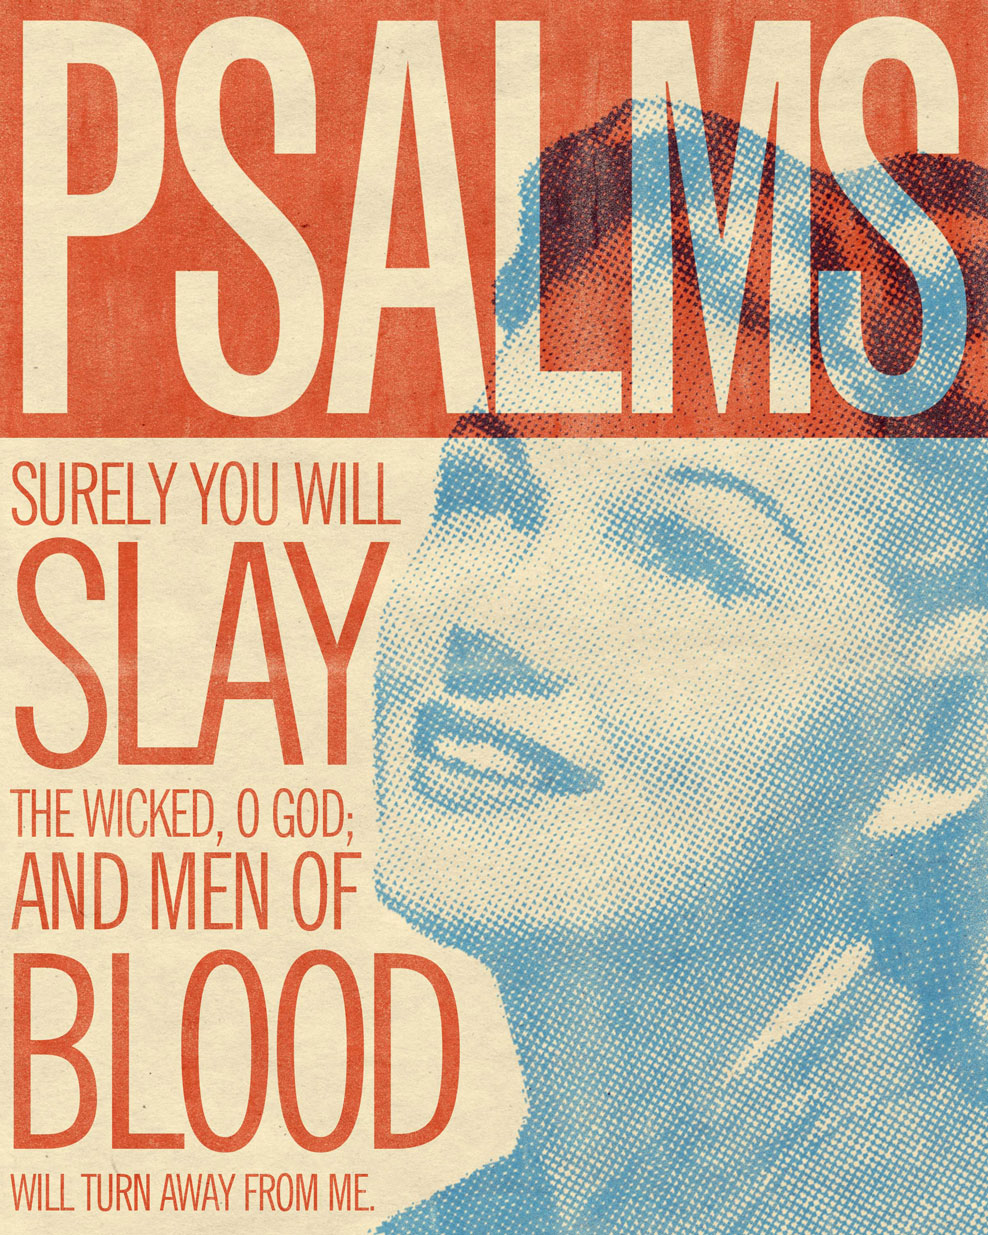 Word-8x10_19-Psalms-01_988.jpg